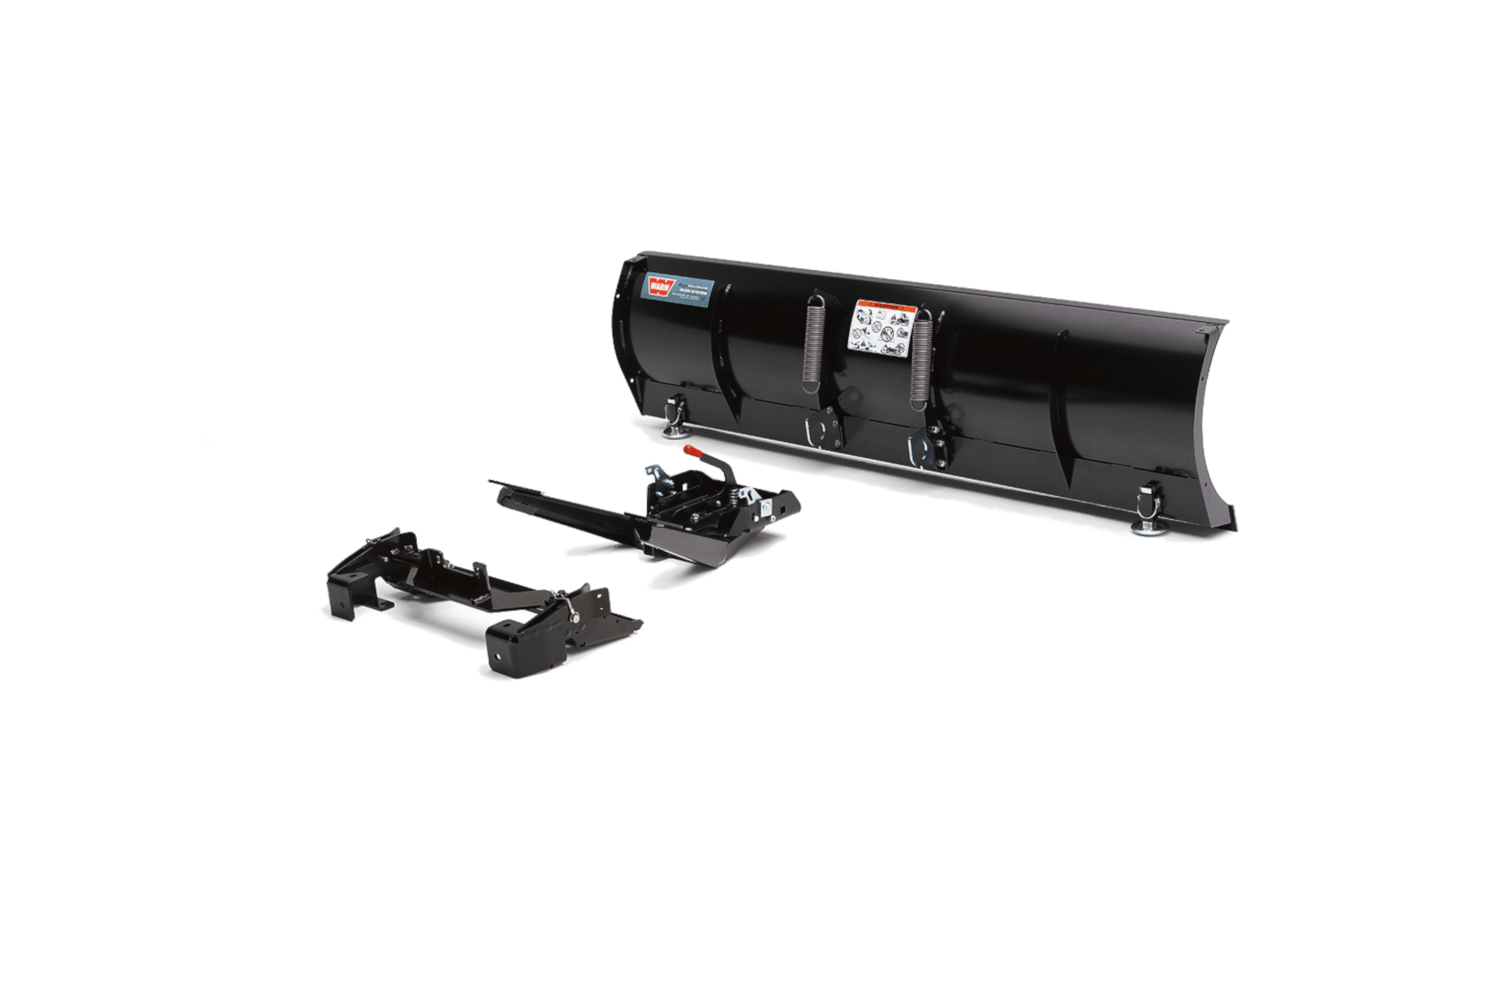 warn powersports kawasaki bumpers